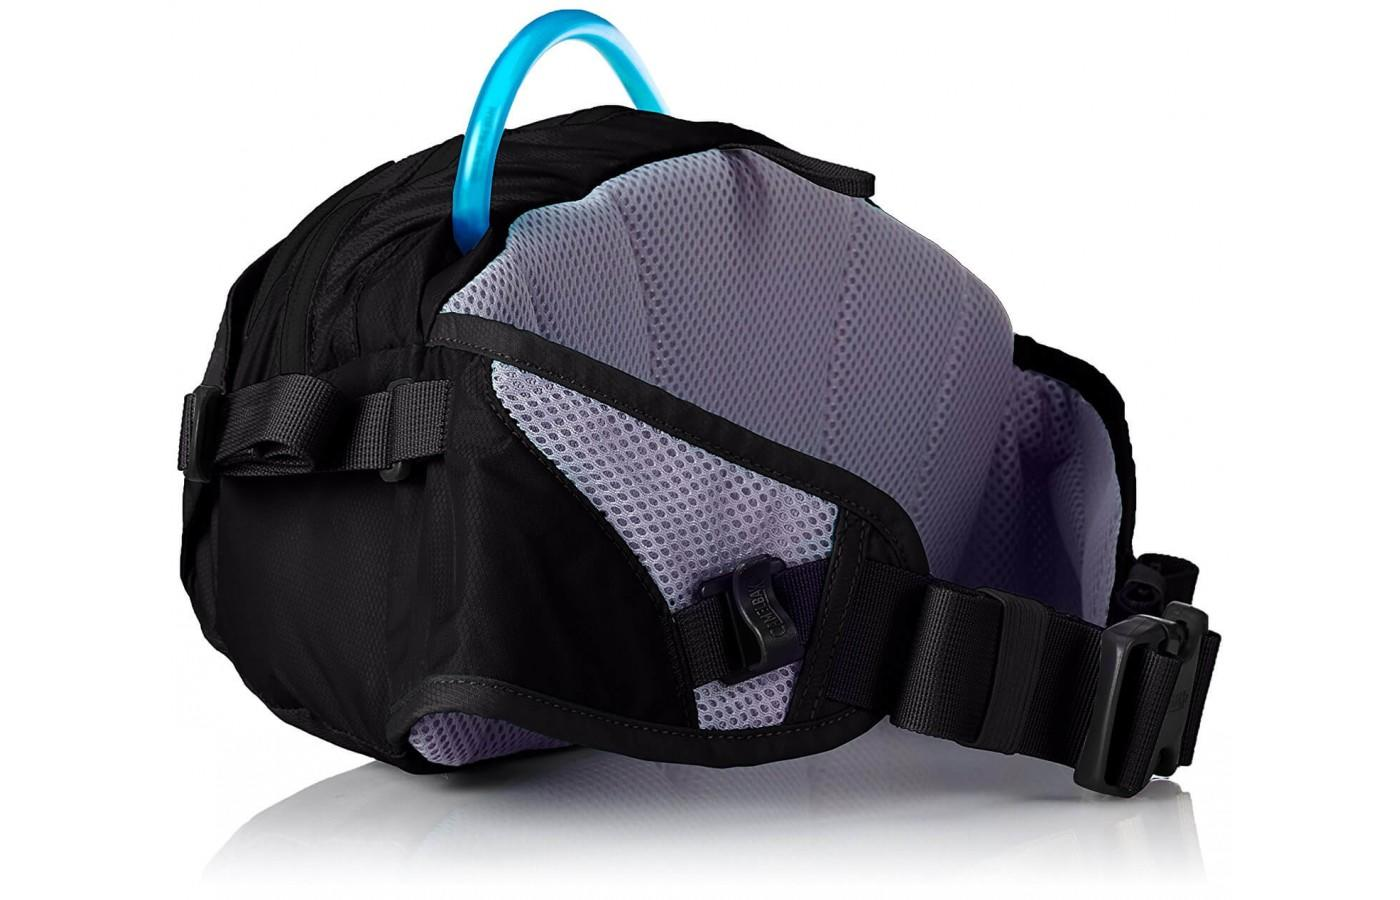 A long hose enables runners to drink from the CamelBak Flash Flo LR Belt without unzipping any pockets.